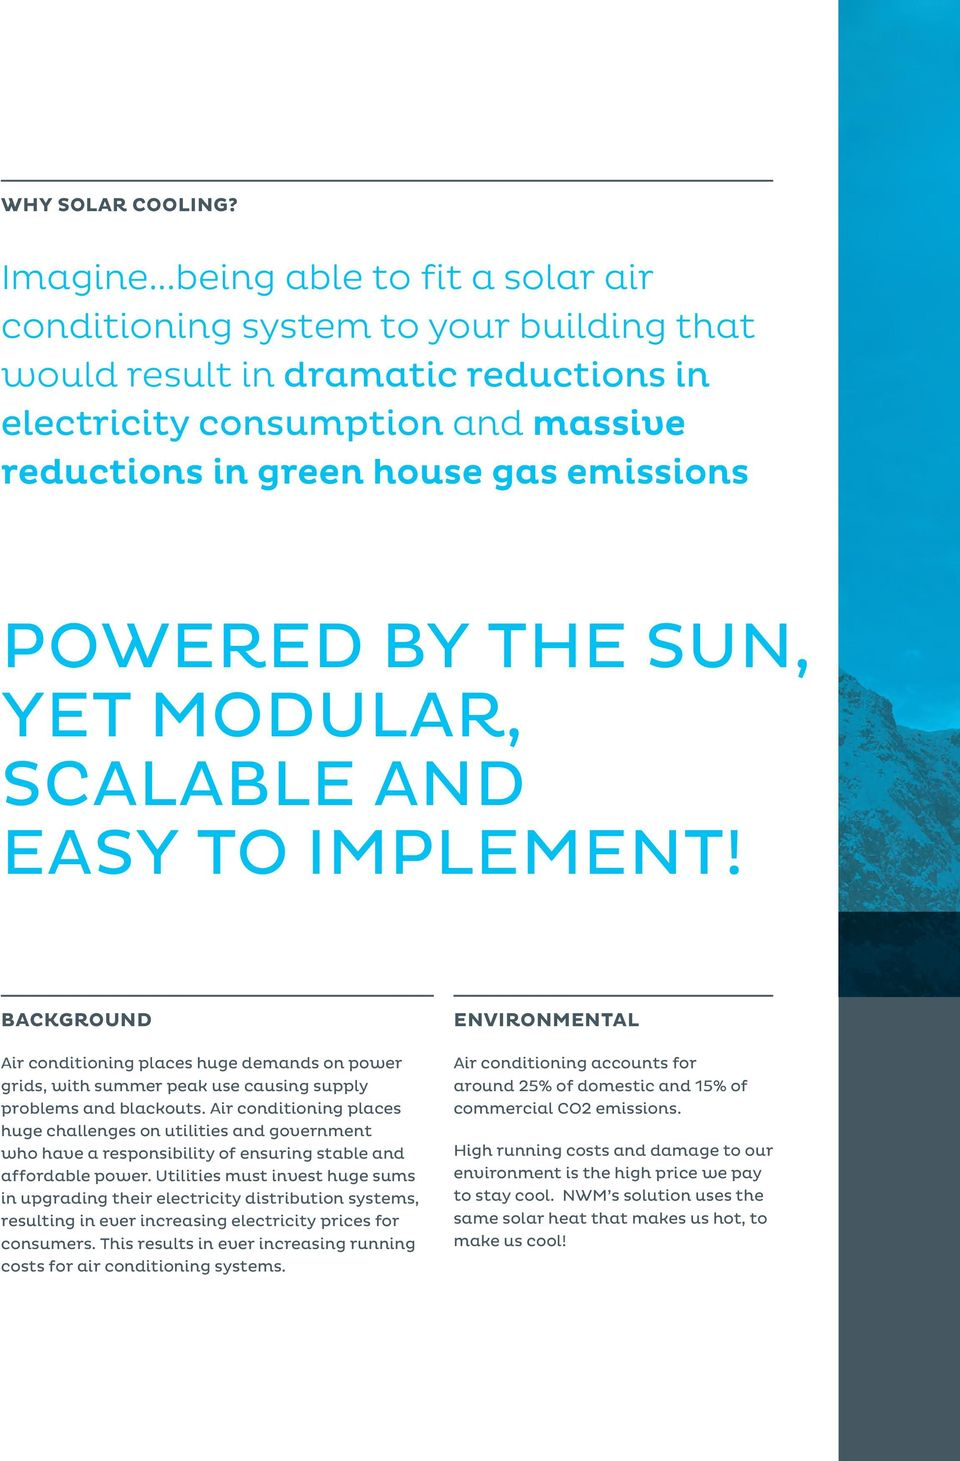 THE SUN, YET MODULAR, SCALABLE AND EASY TO IMPLEMENT! BACKGROUND Air conditioning places huge demands on power grids, with summer peak use causing supply problems and blackouts.